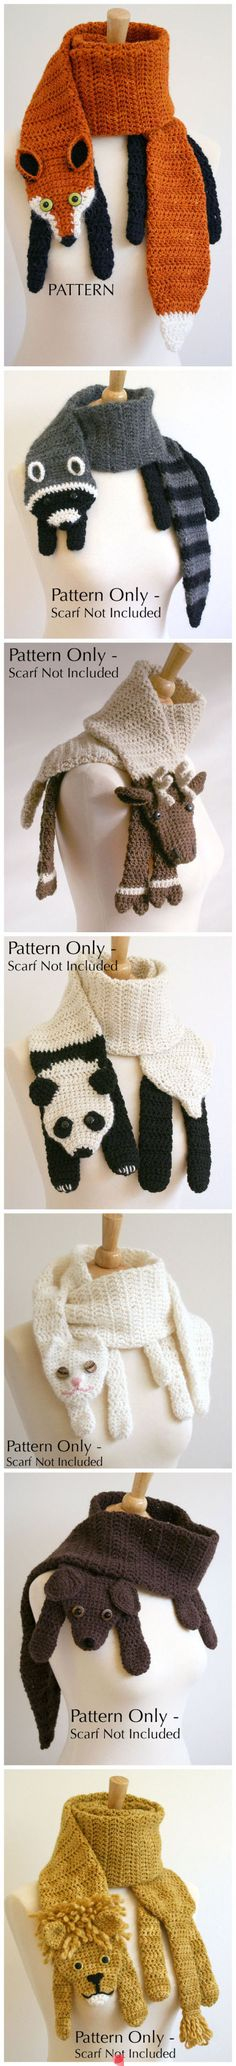 Great idea for a crocheted scarf!